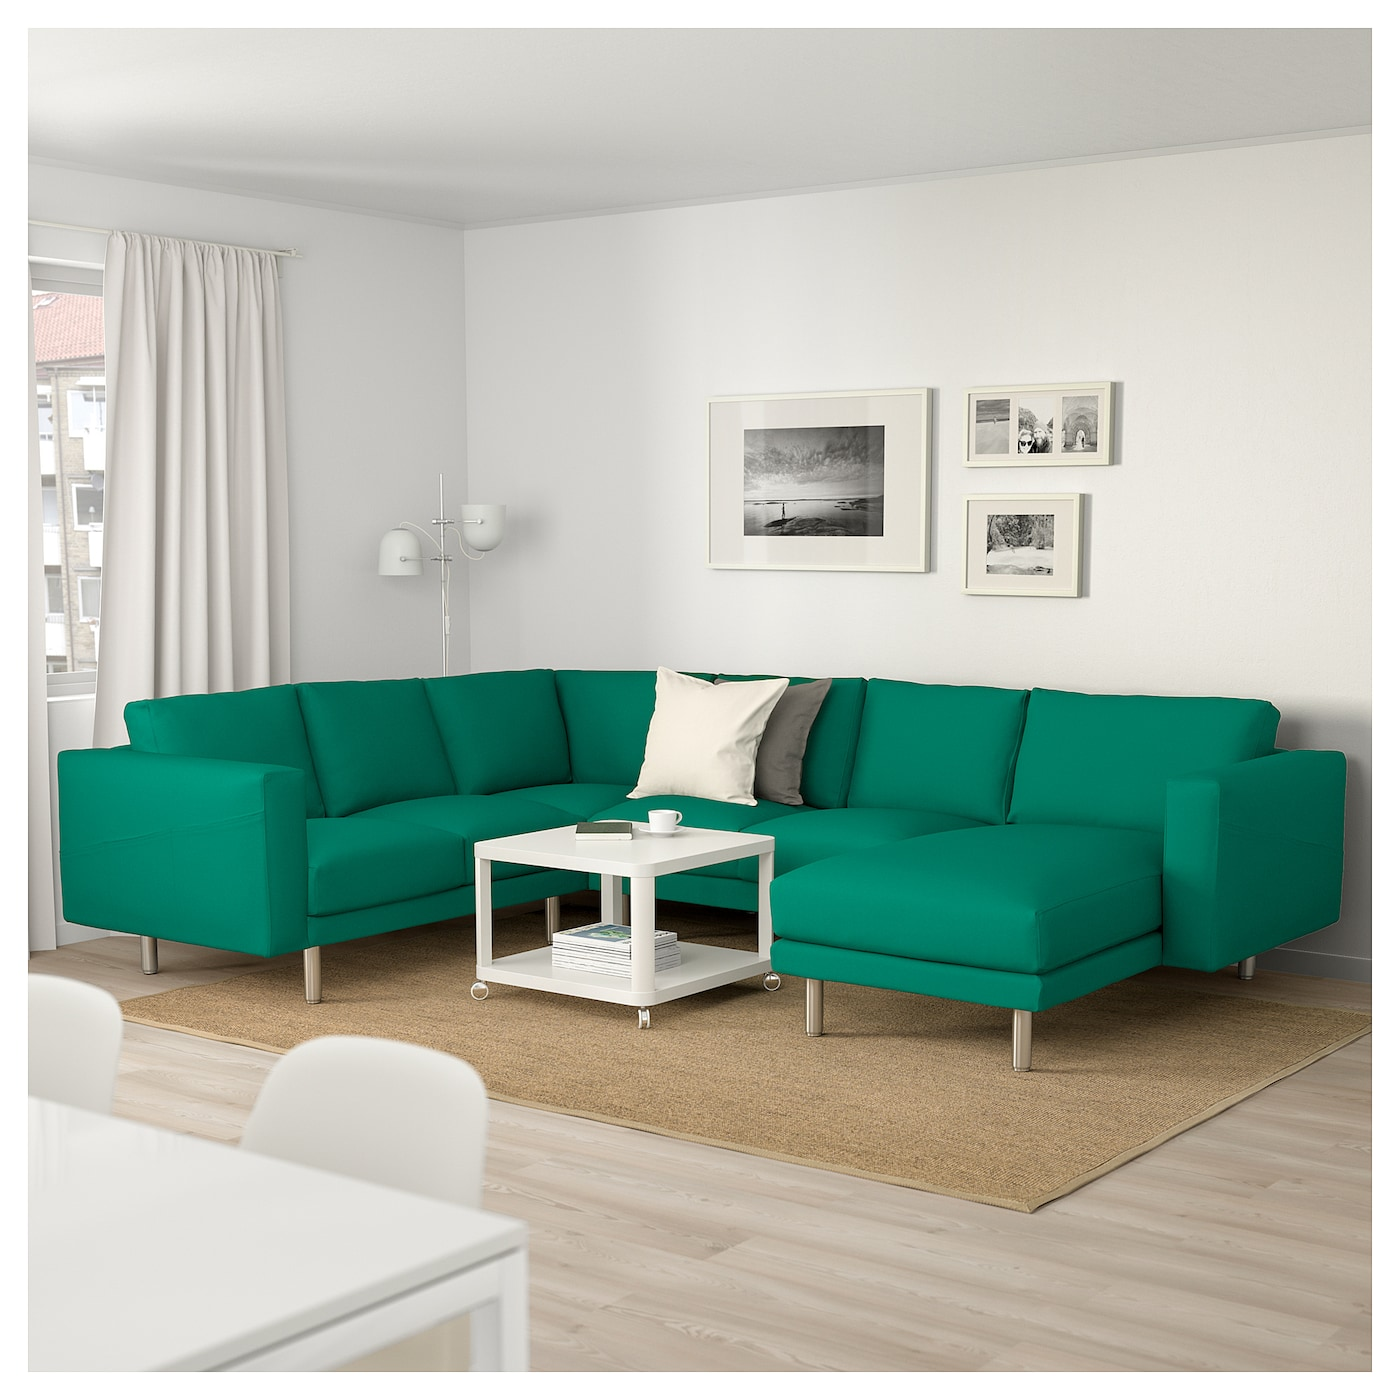 Norsborg corner sofa 5 seat with chaise longue gr sbo for 5 seater sofa with chaise